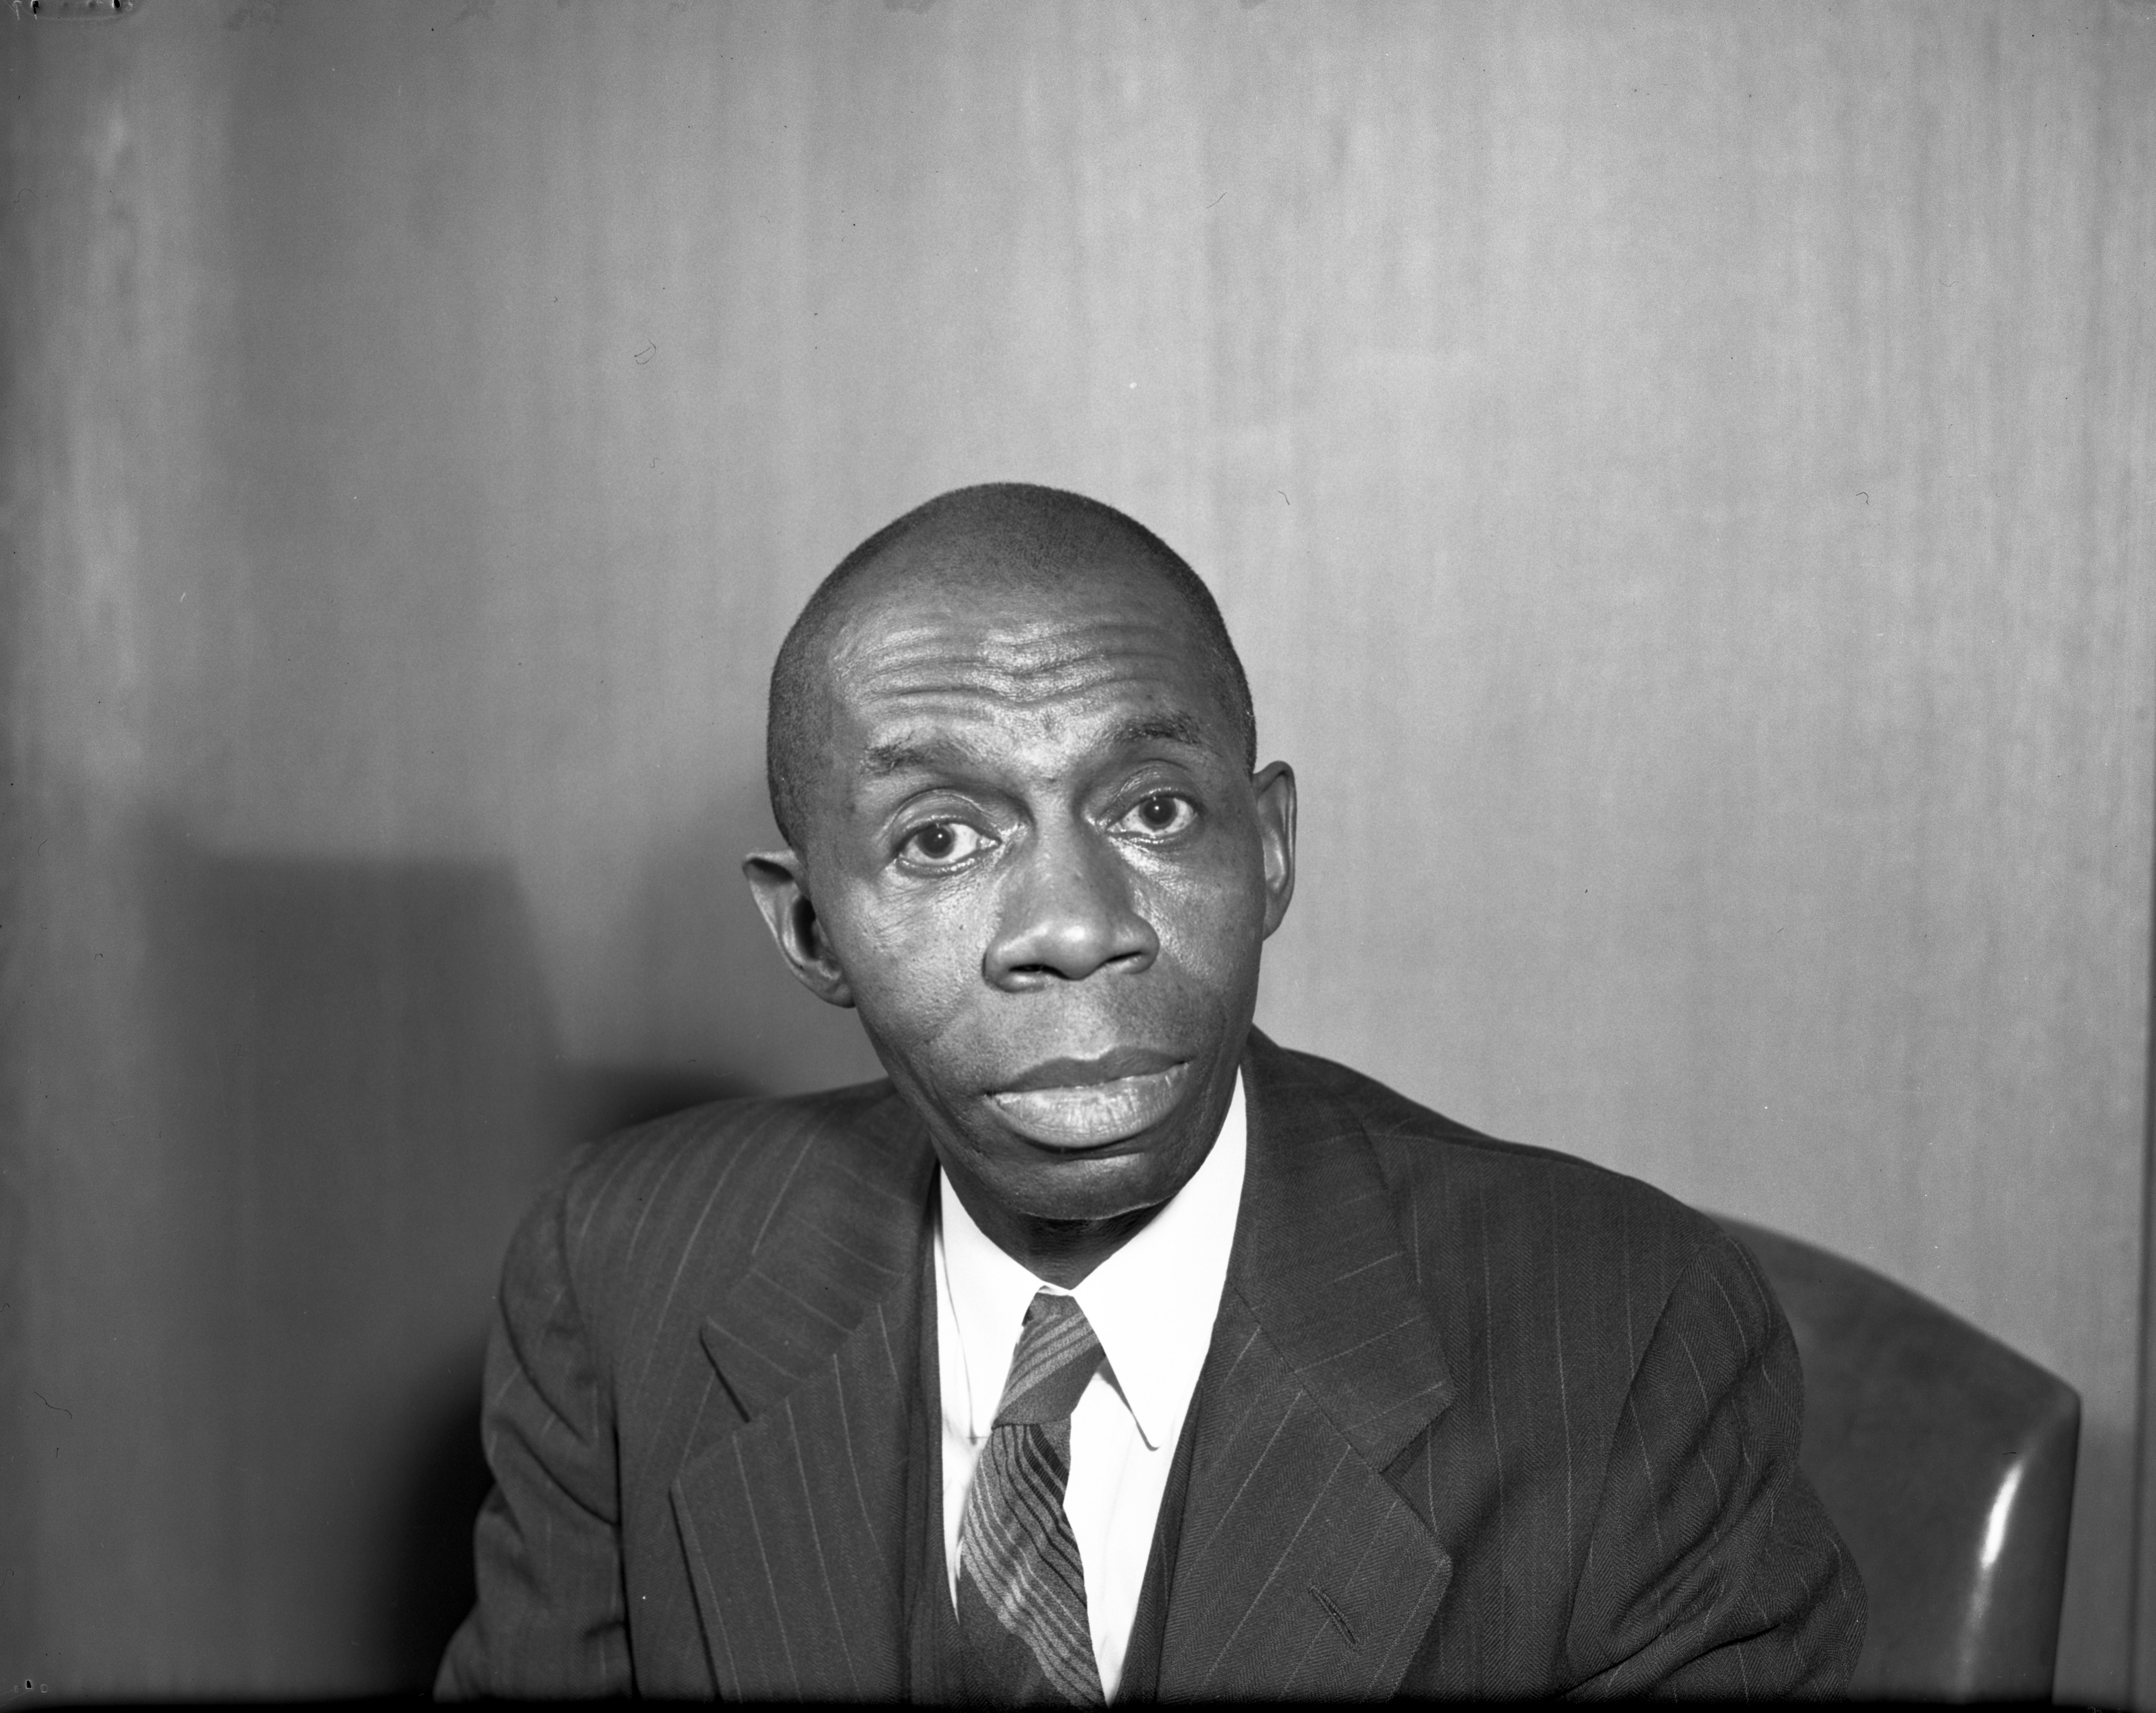 Rev. Charles W. Carpenter, Pastor of Second Baptist Church, March 1943 image